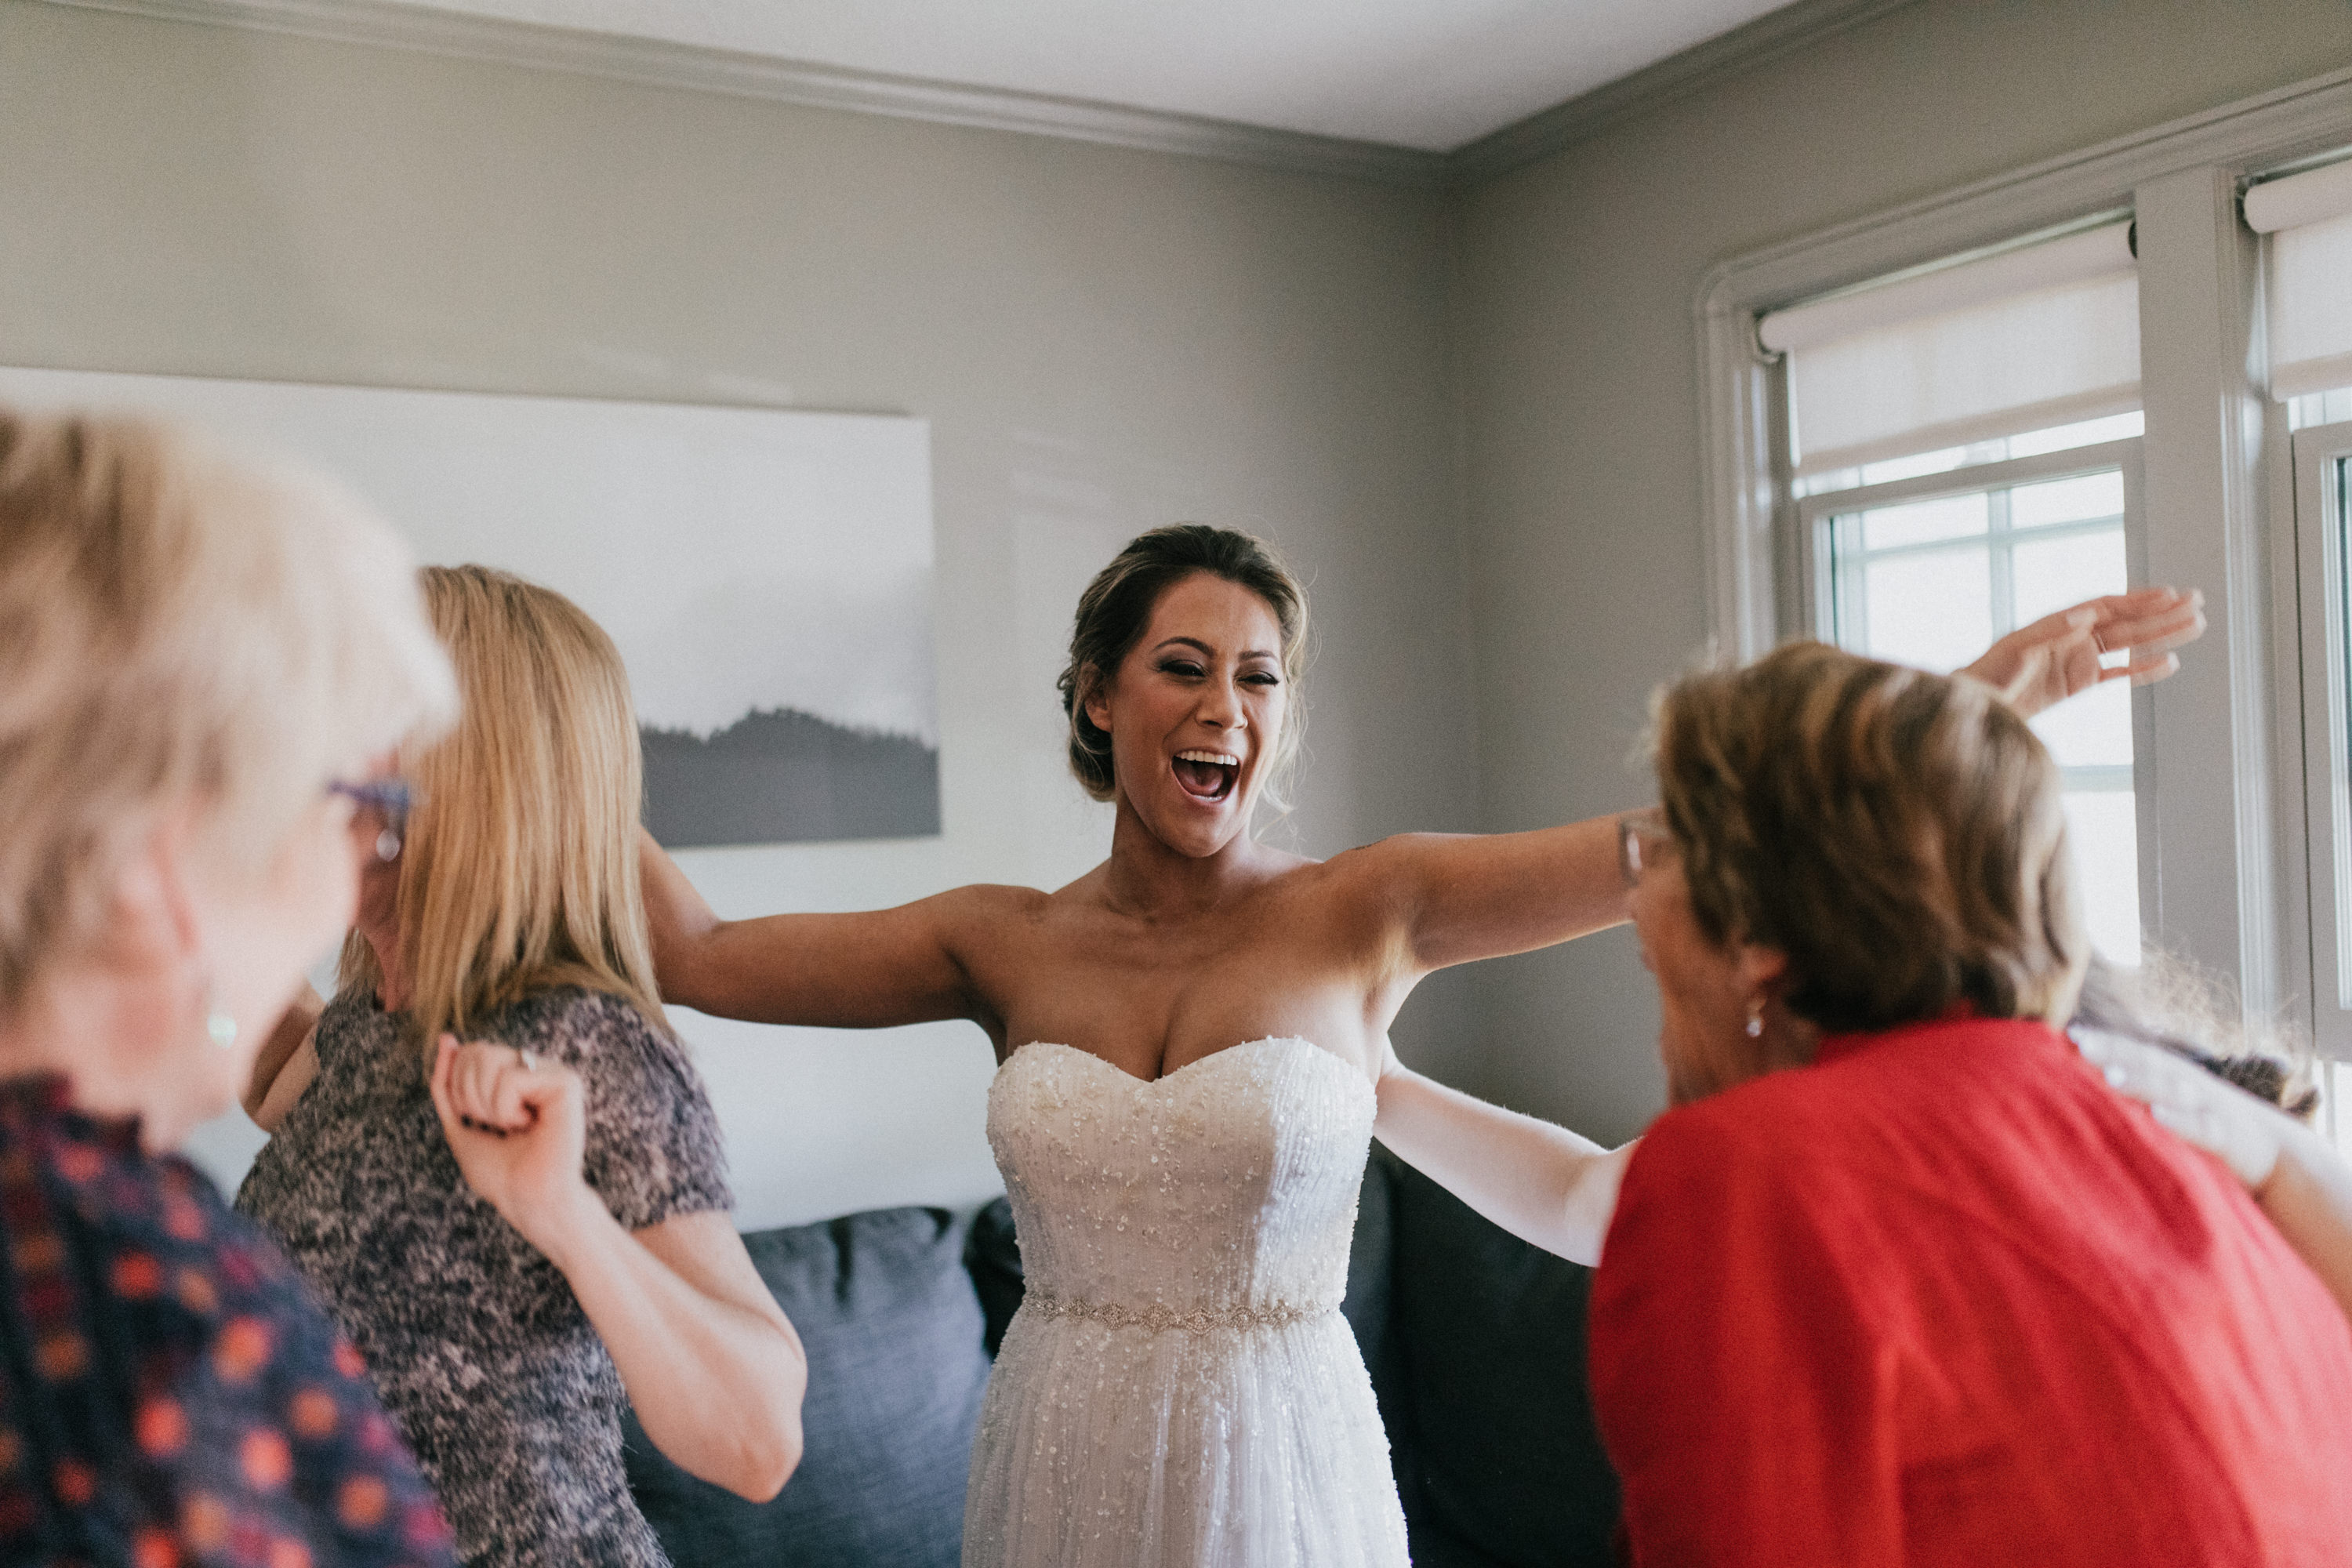 bride celebrating getting into dress